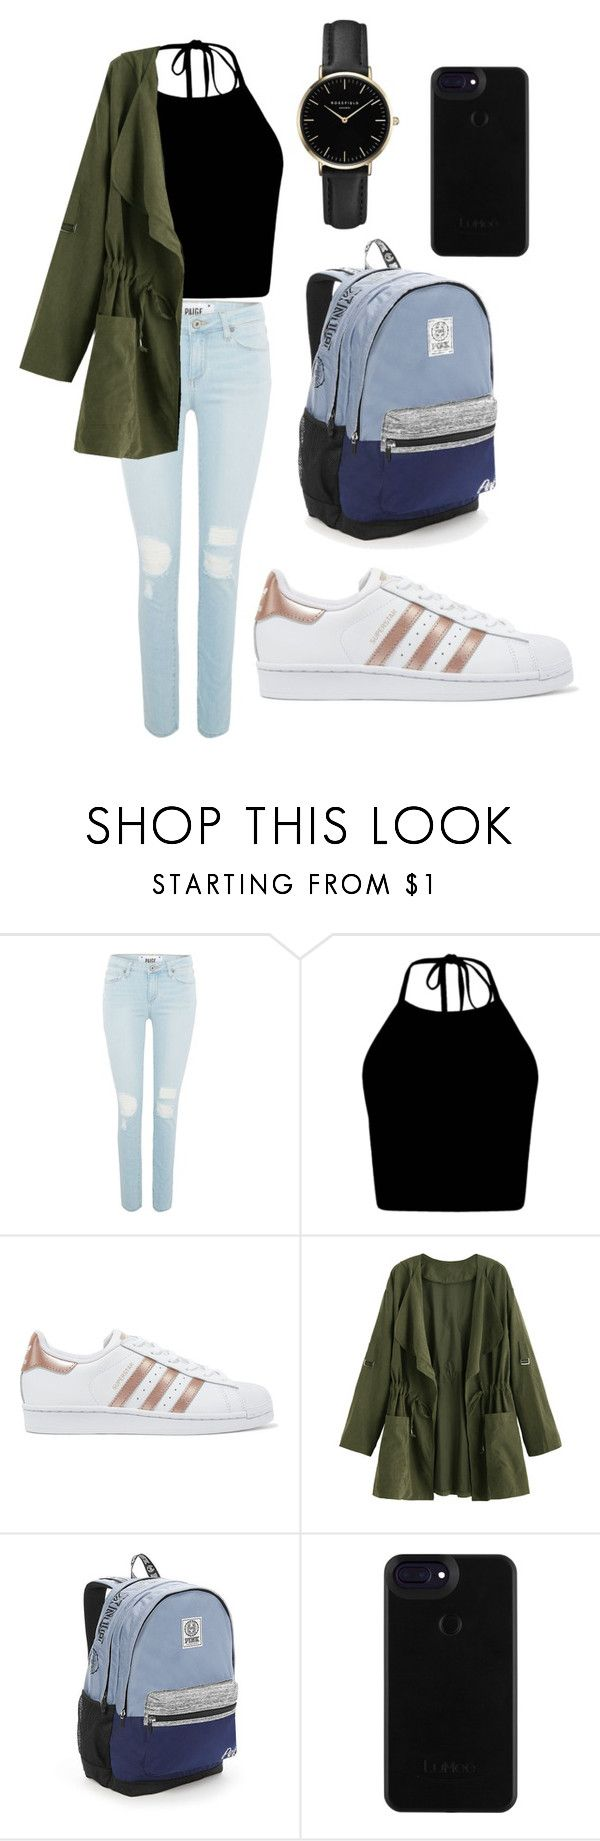 """school 101"" by fashionblogger2122 on Polyvore featuring Paige Denim, adidas Originals, Victoria's Secret and ROSEFIELD"